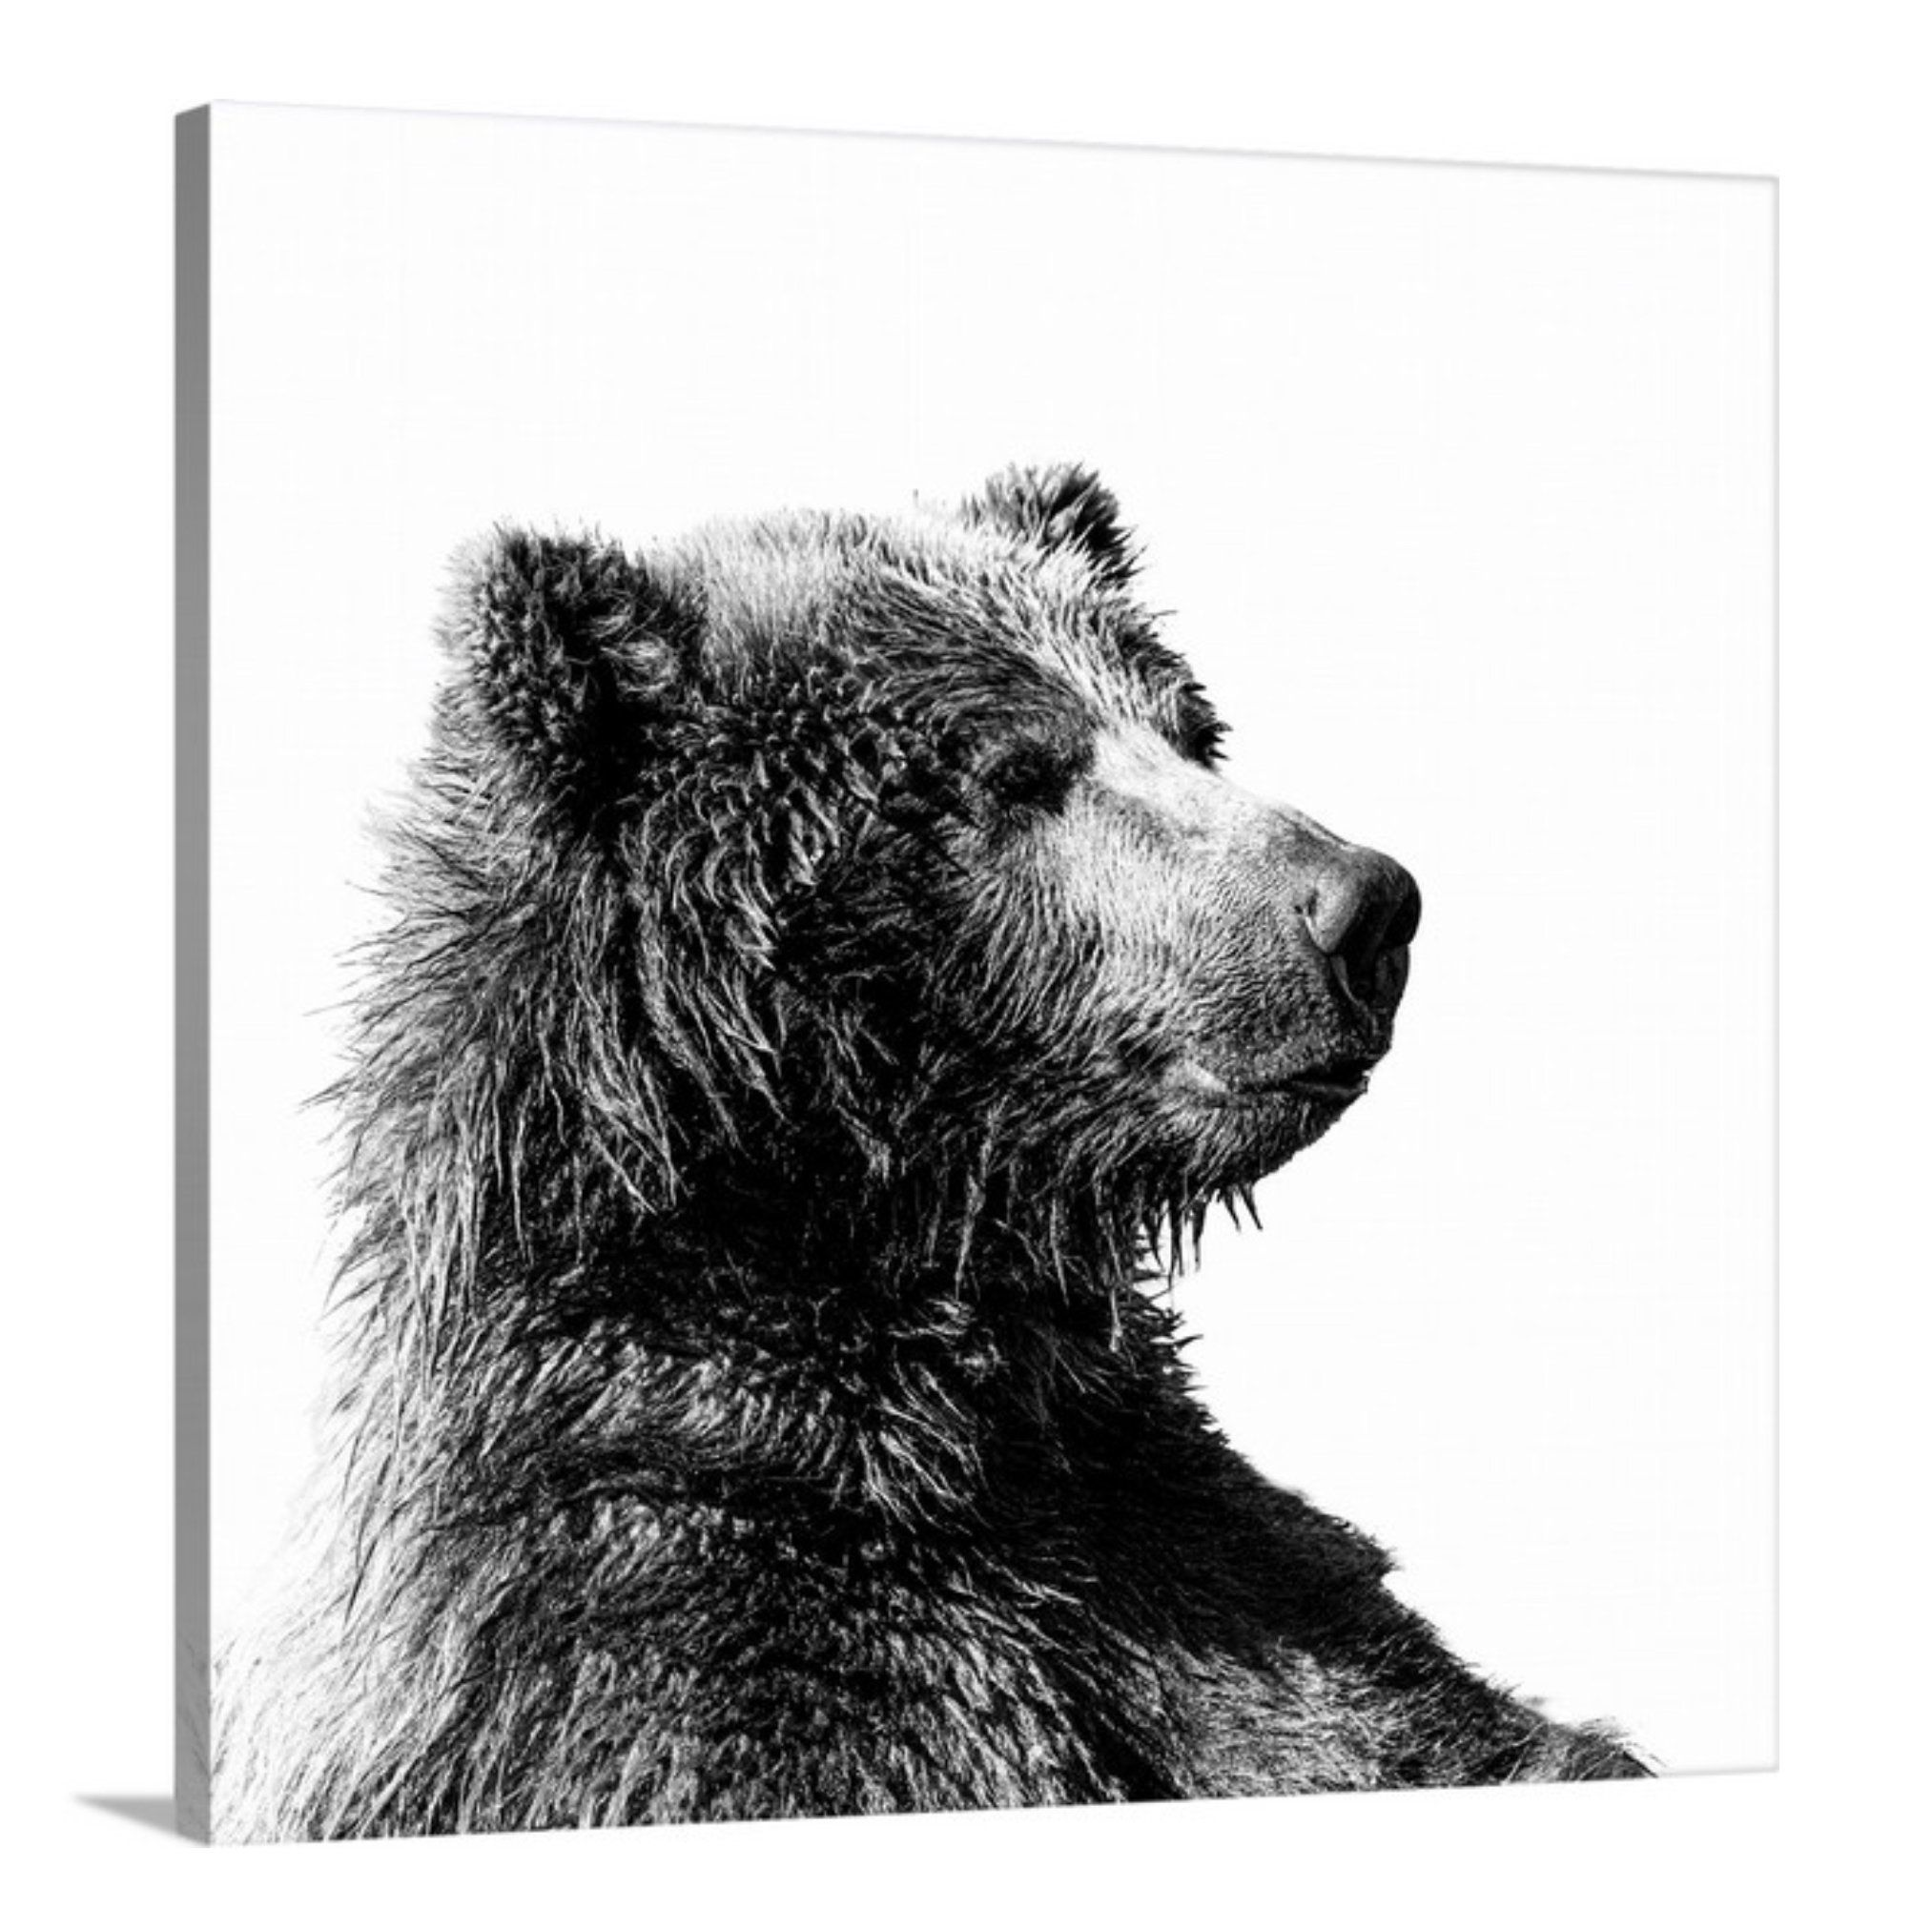 Oversize Wall Art Grizzly Bear Canvas Grizzly Bear Print Etsy Bear Print Oversized Wall Art Grizzly Bear